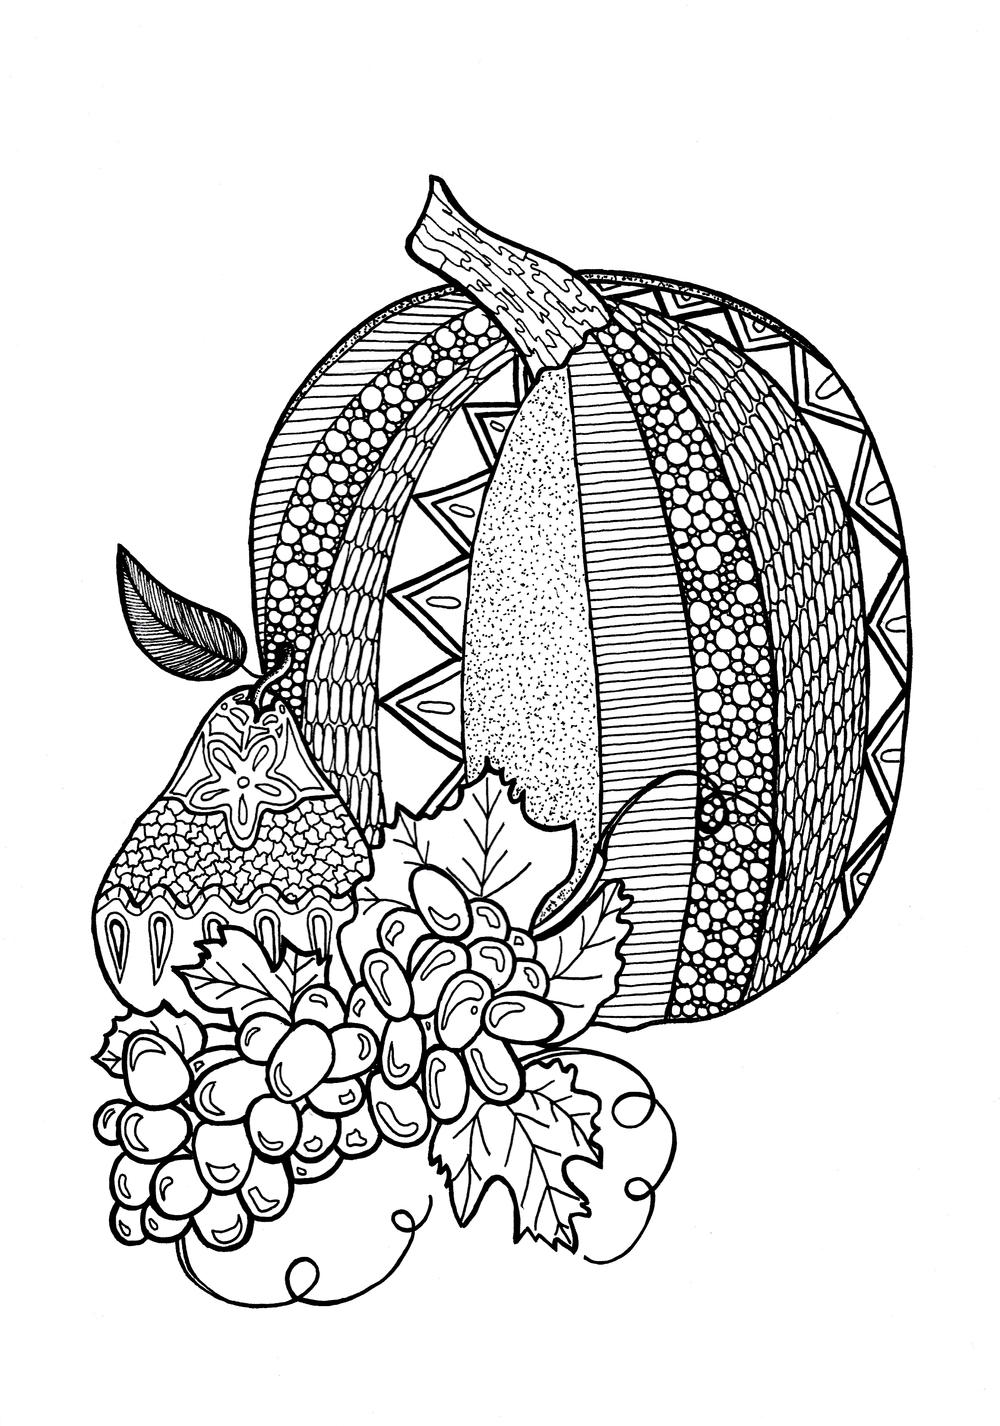 pumpkin coloring sheets creatively christy halloween craft 4 halloween coloring pumpkin coloring sheets